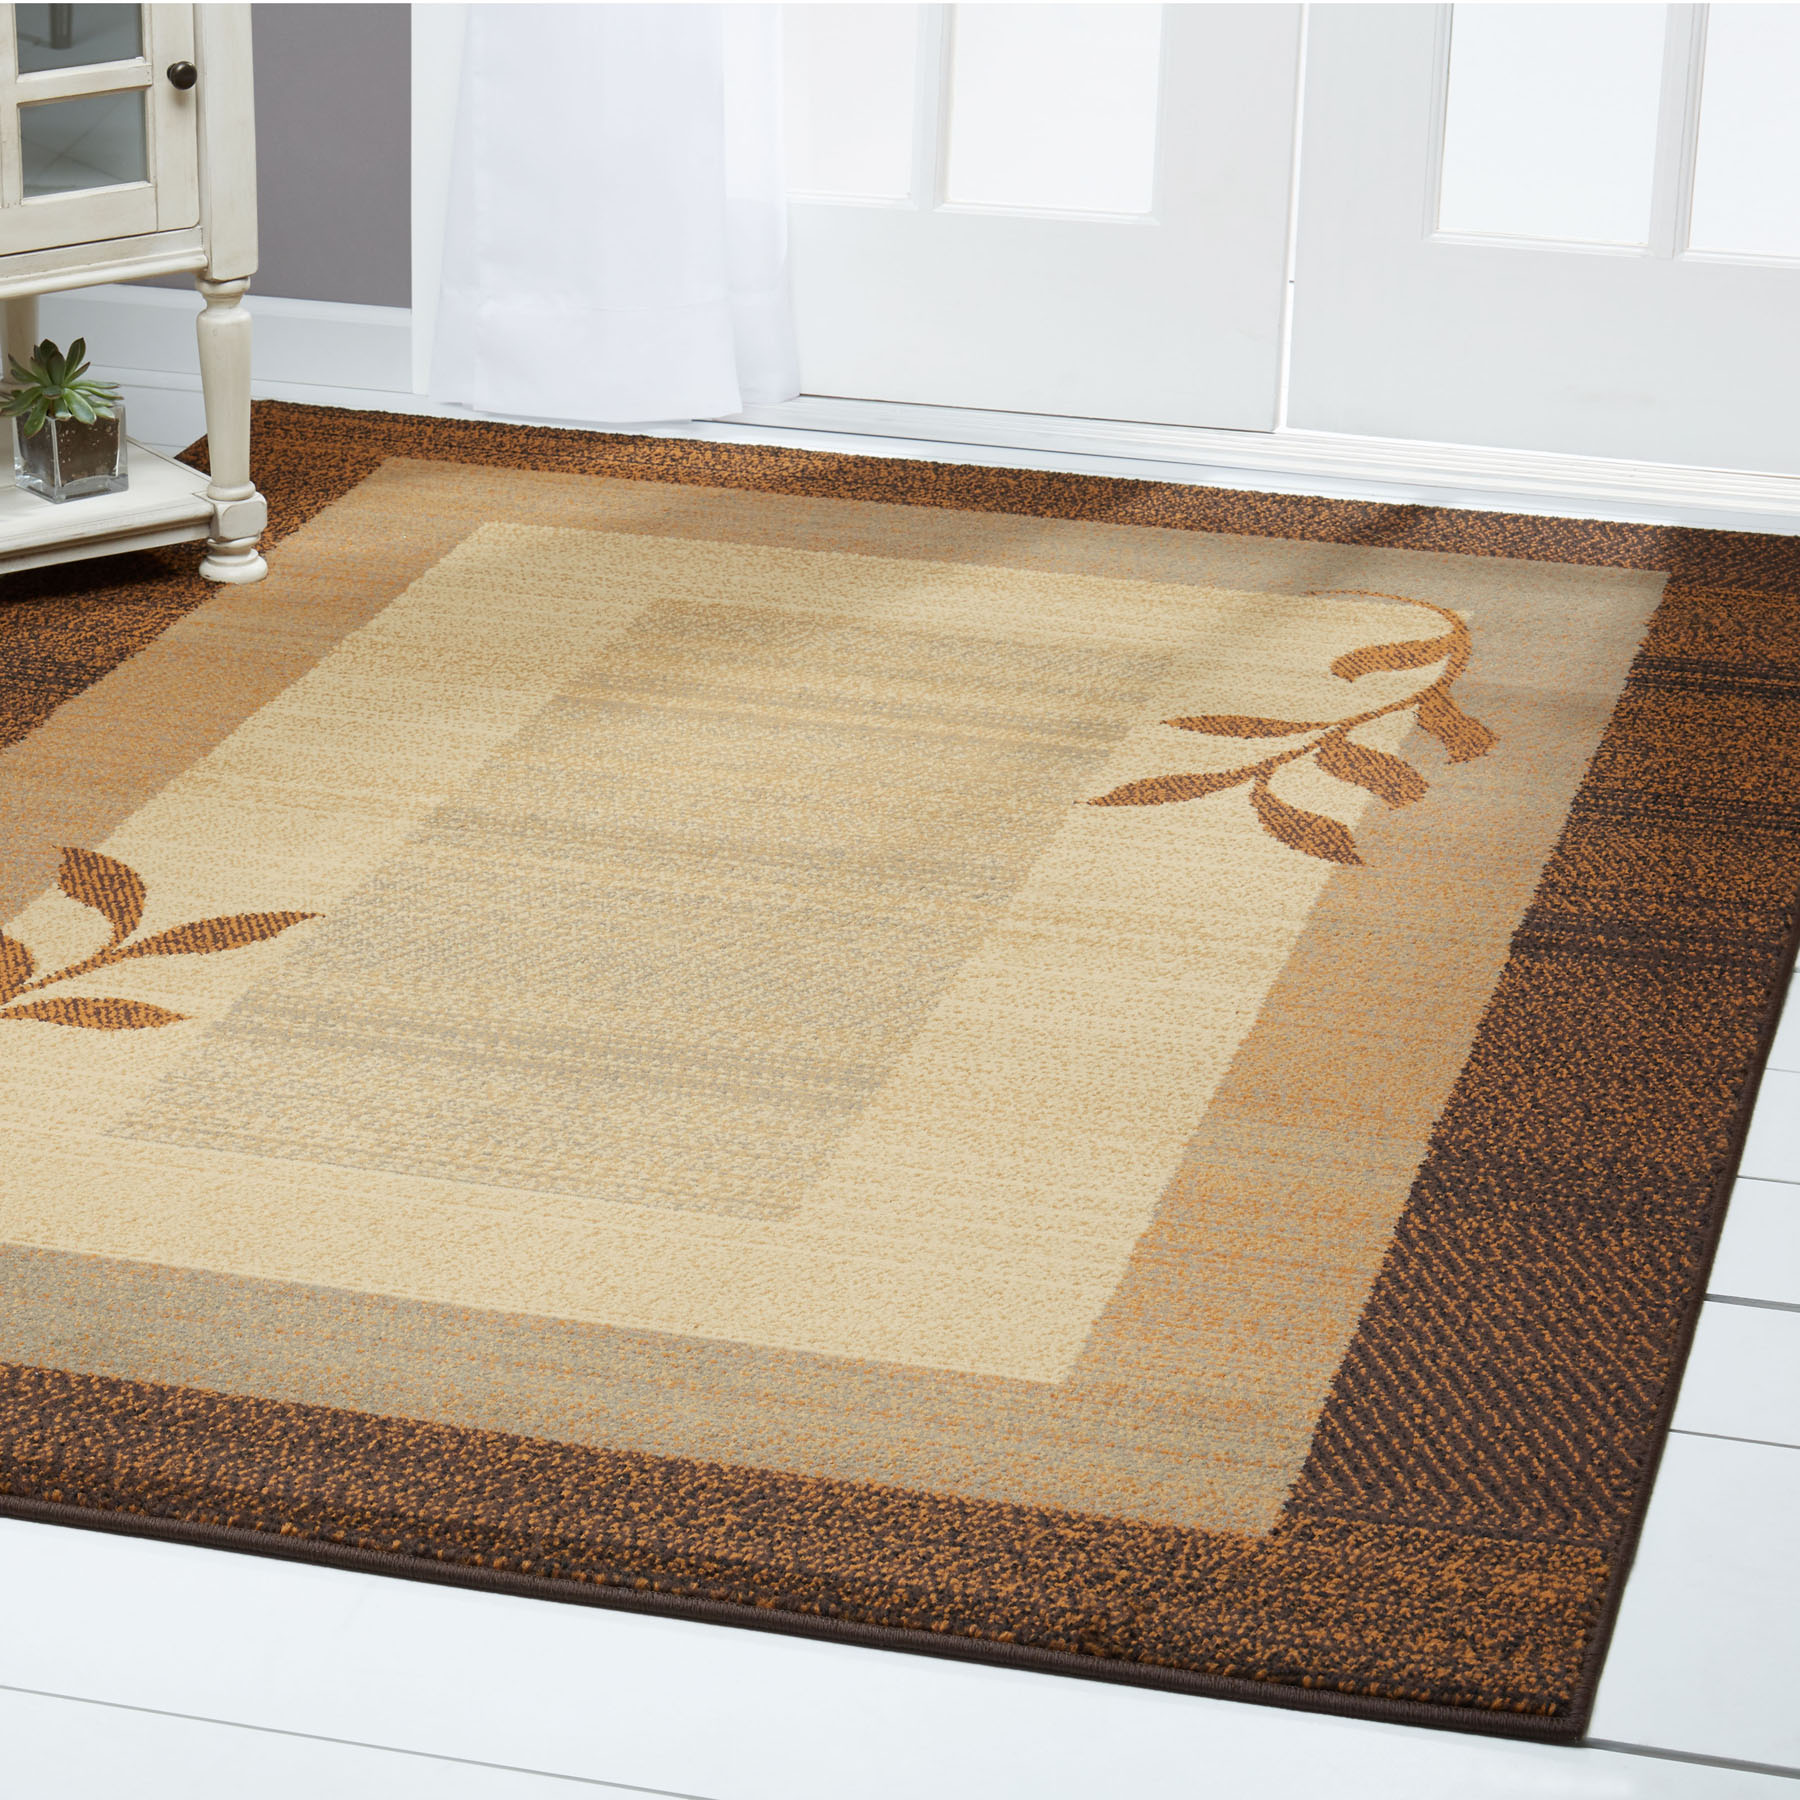 Geometric Brown Beige Modern 4x6 Area Rug Leaves Carpet Actual 3 6 X 5 2 Ebay